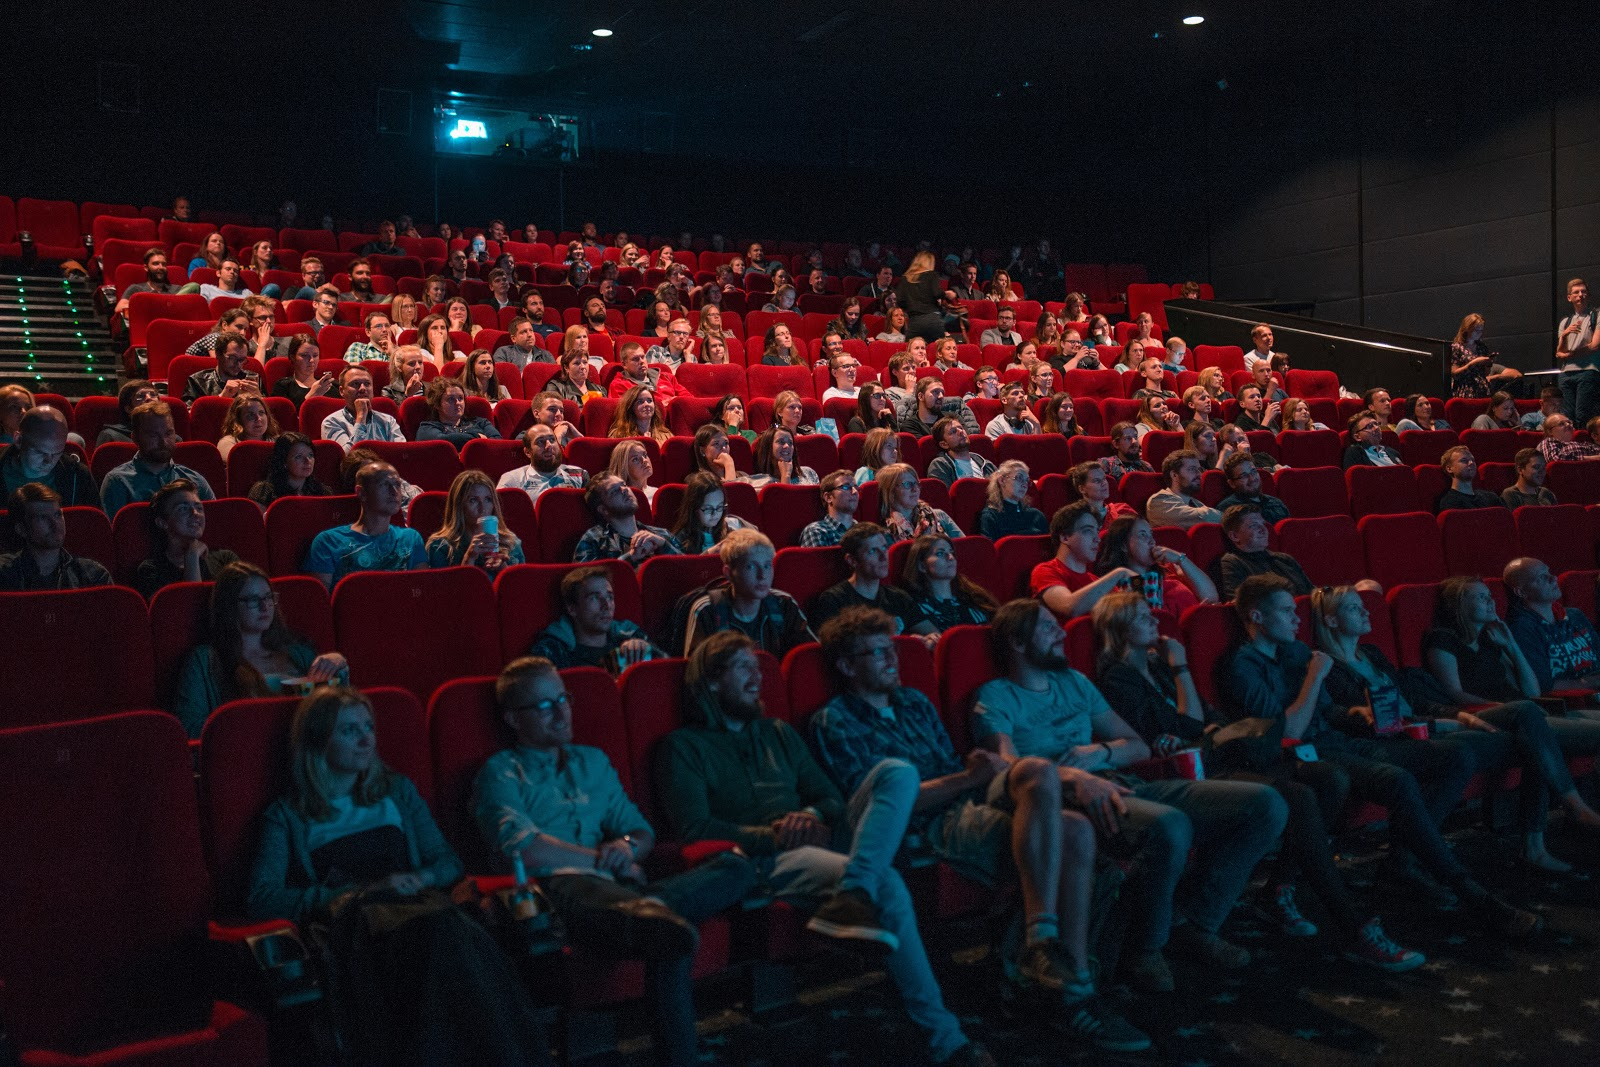 a crowd of people sitting in their seats at the movie theater